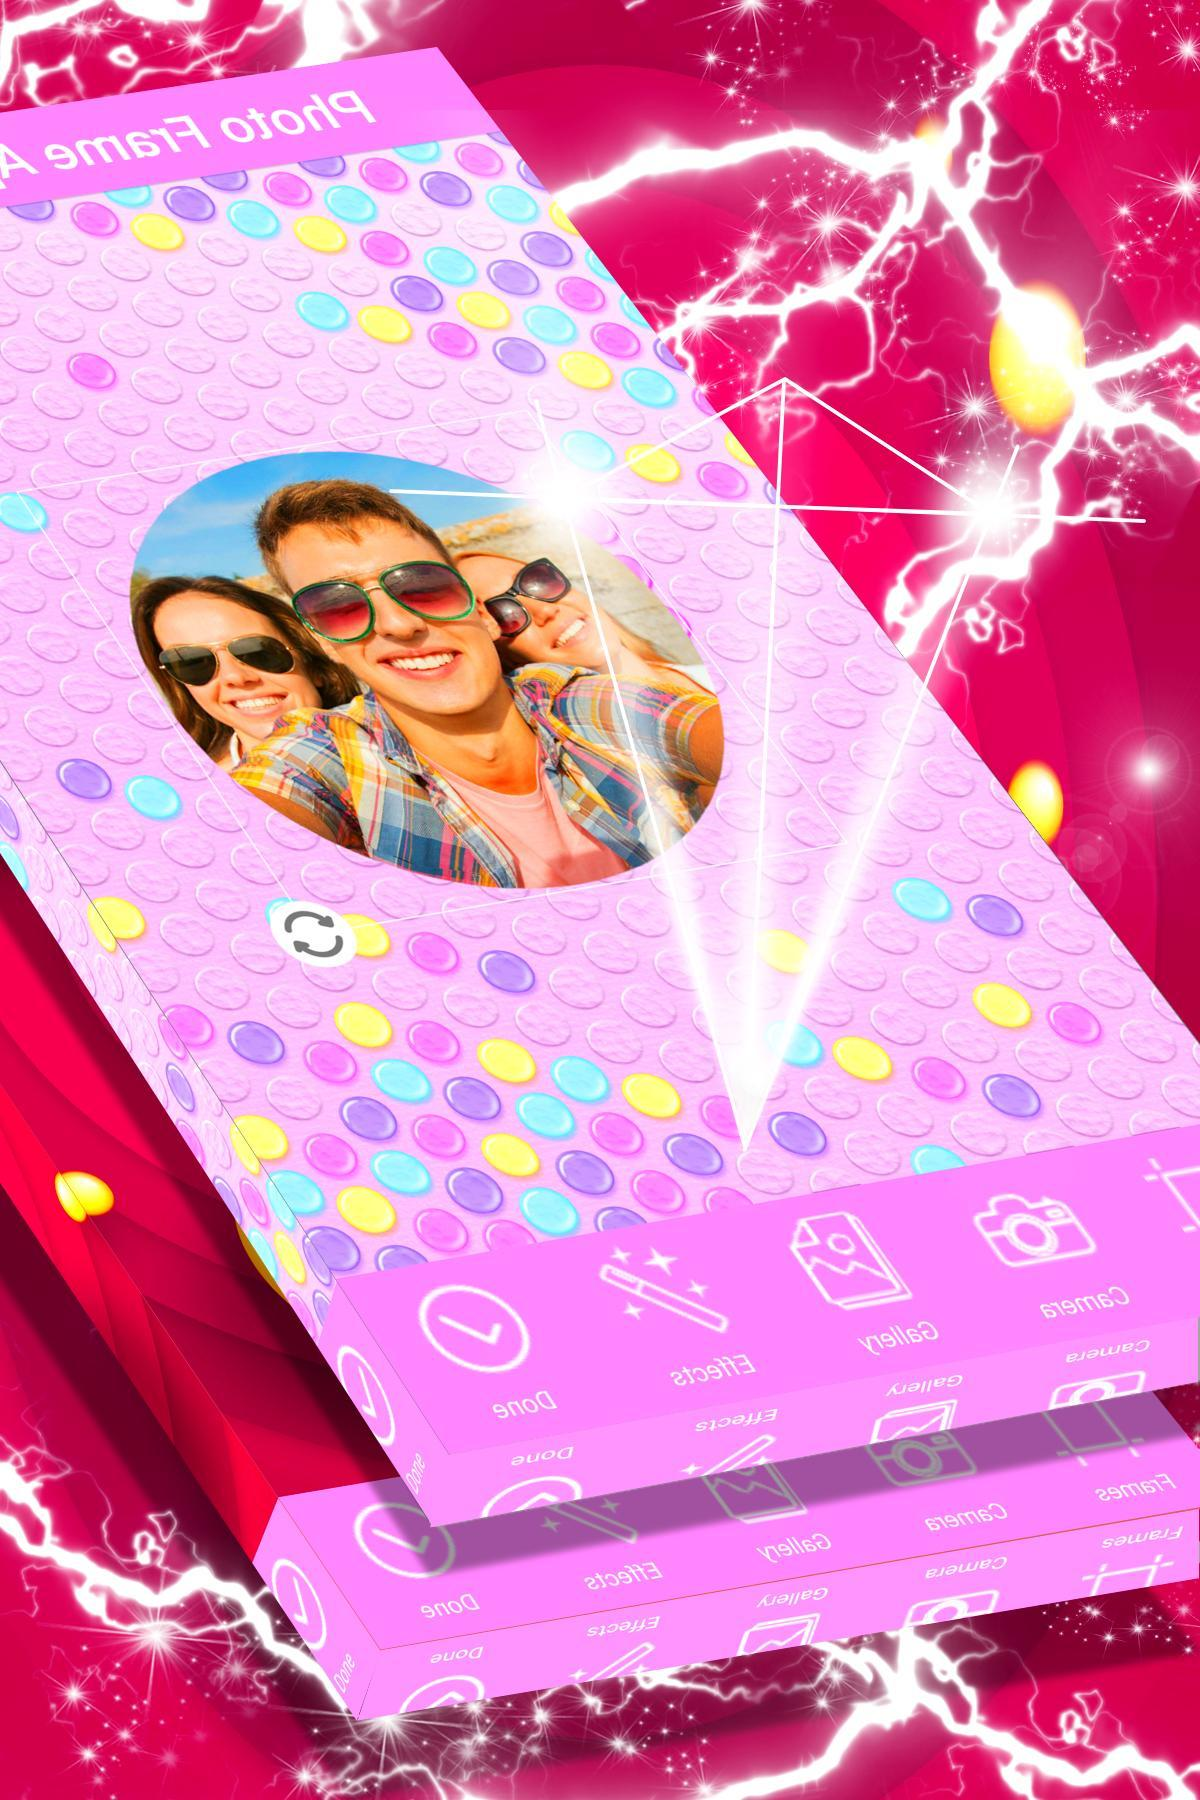 Photo Frame Apps 2018 for Android - APK Download